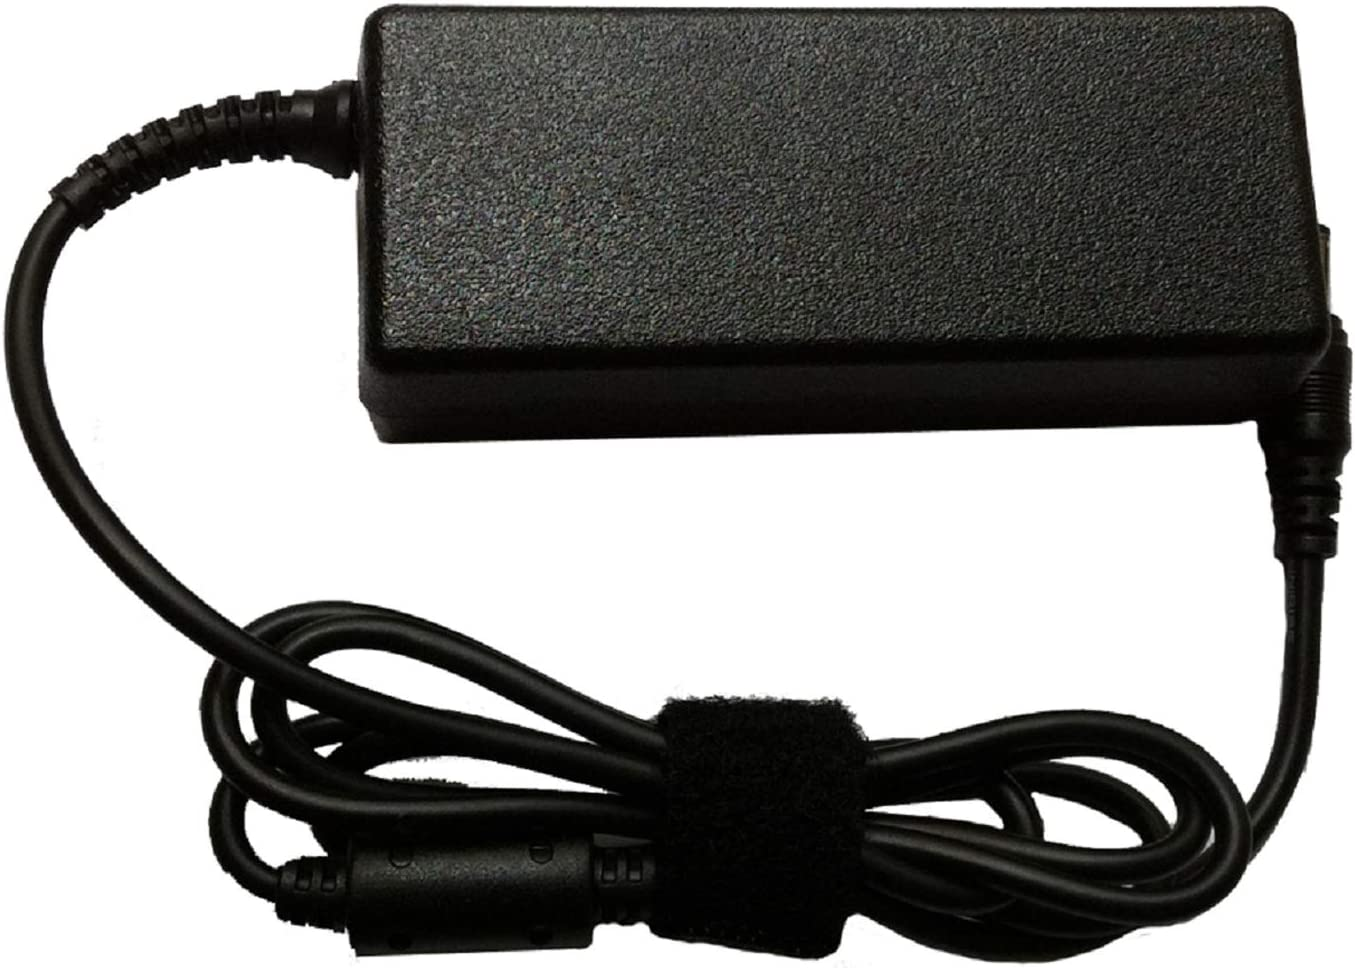 UpBright New AC/DC Adapter Replacement for Samsung HW-J250 HW-J250/EN HW-J250/ZA HW-J250/XU HWJ250 Wireless Sound bar Home Theatre System Soundbar Power Supply Cord Cable PS Battery Charger Mains PSU